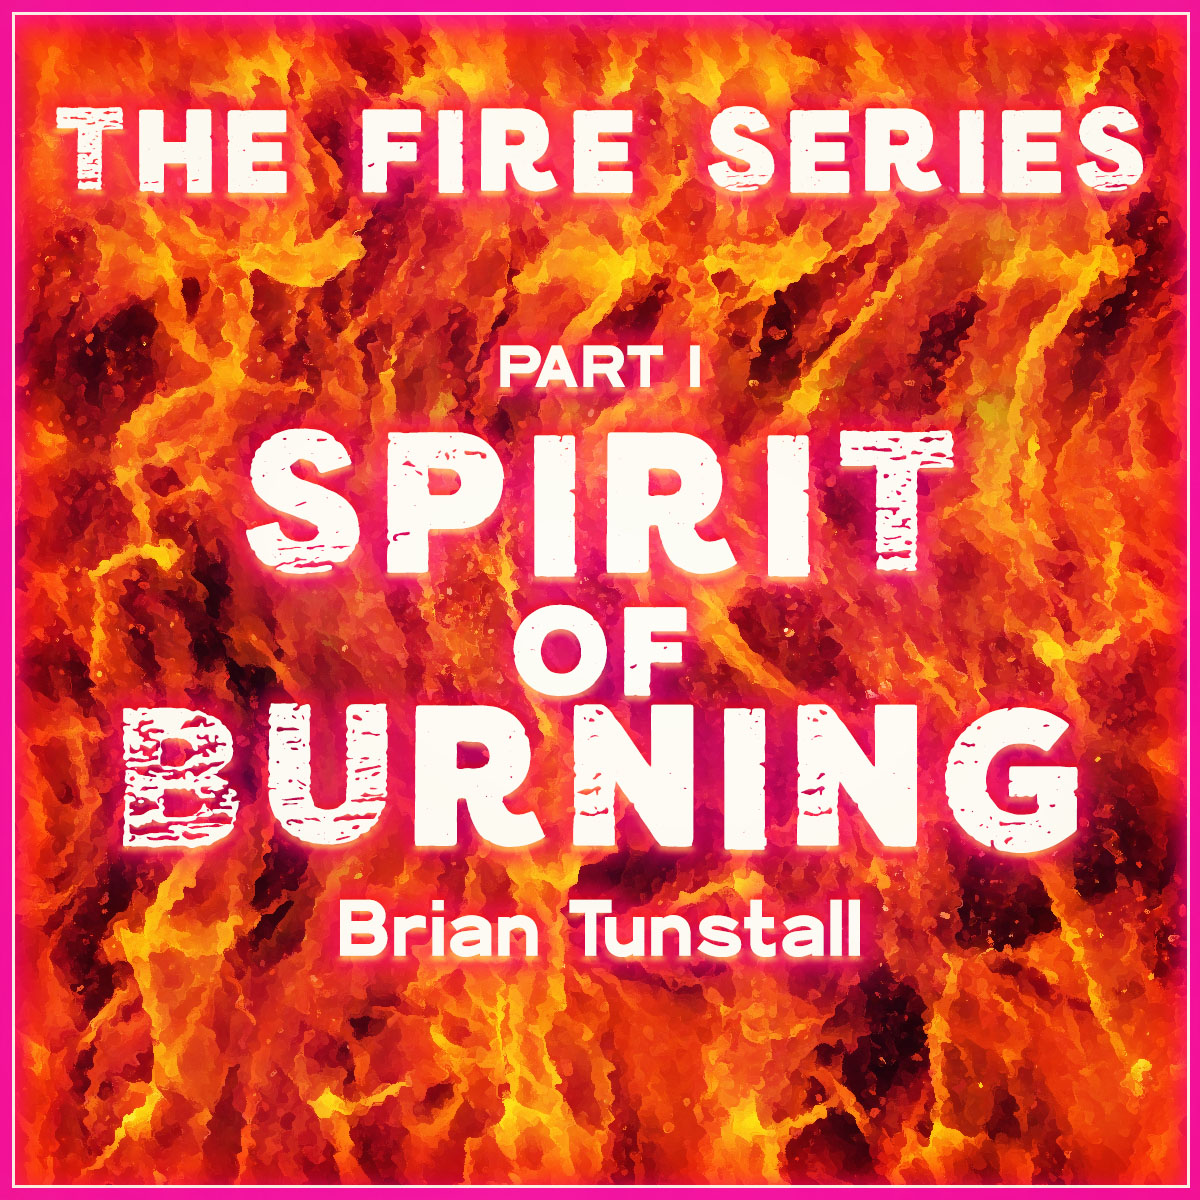 The Fire Series1_SpiritofBurning_Cover Art